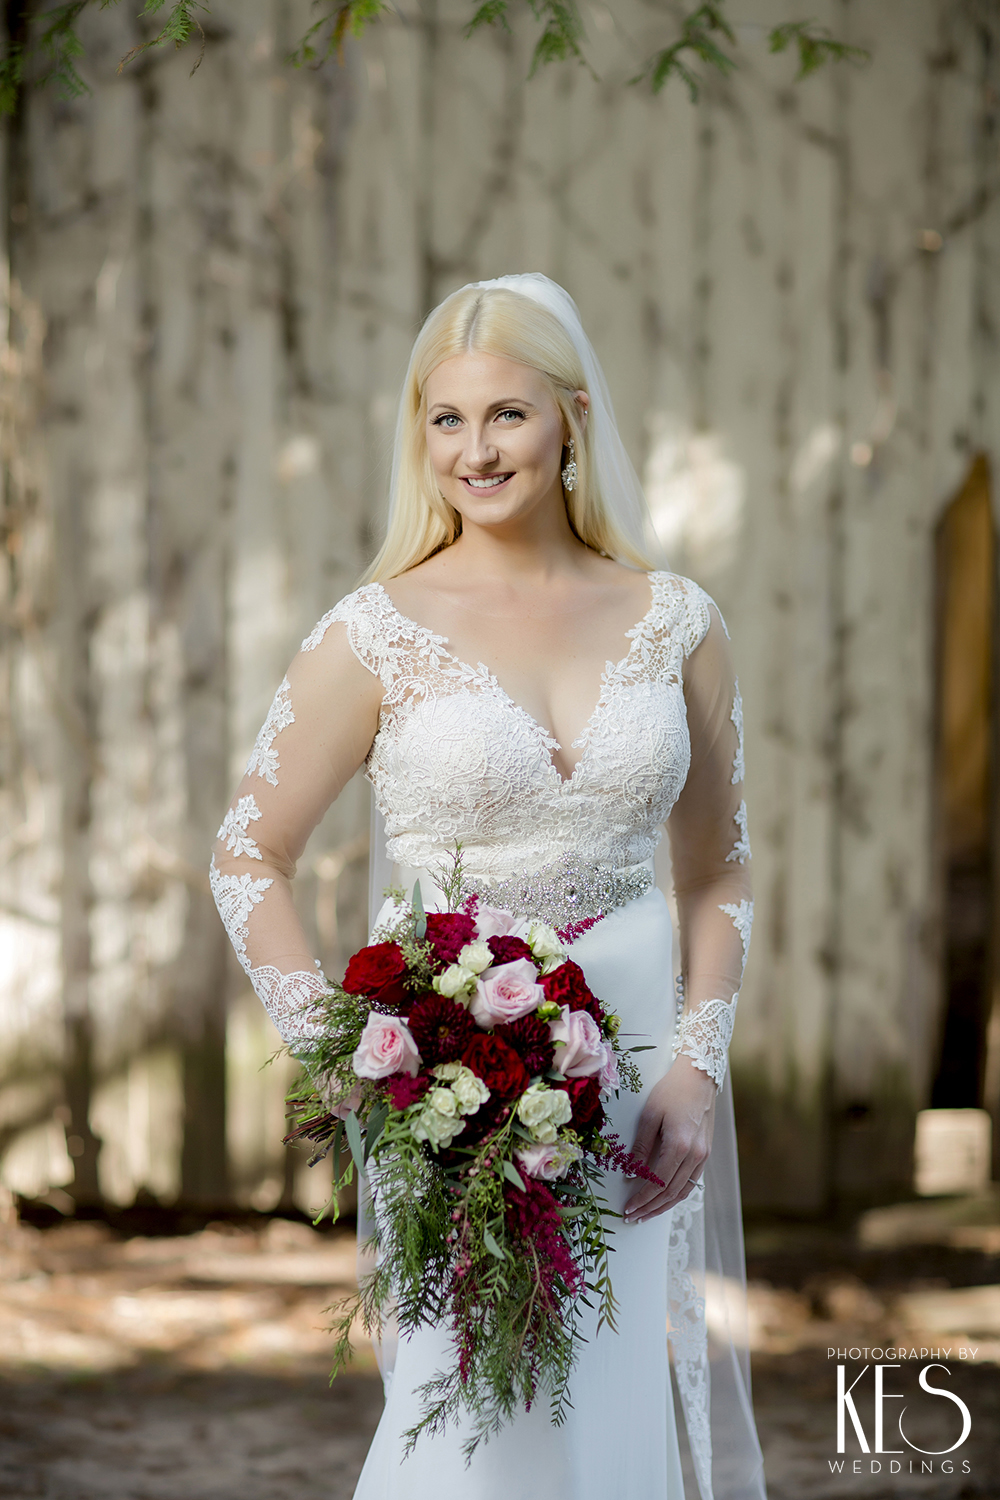 Marlsgate_Bridals_KES_Weddings_1.JPG